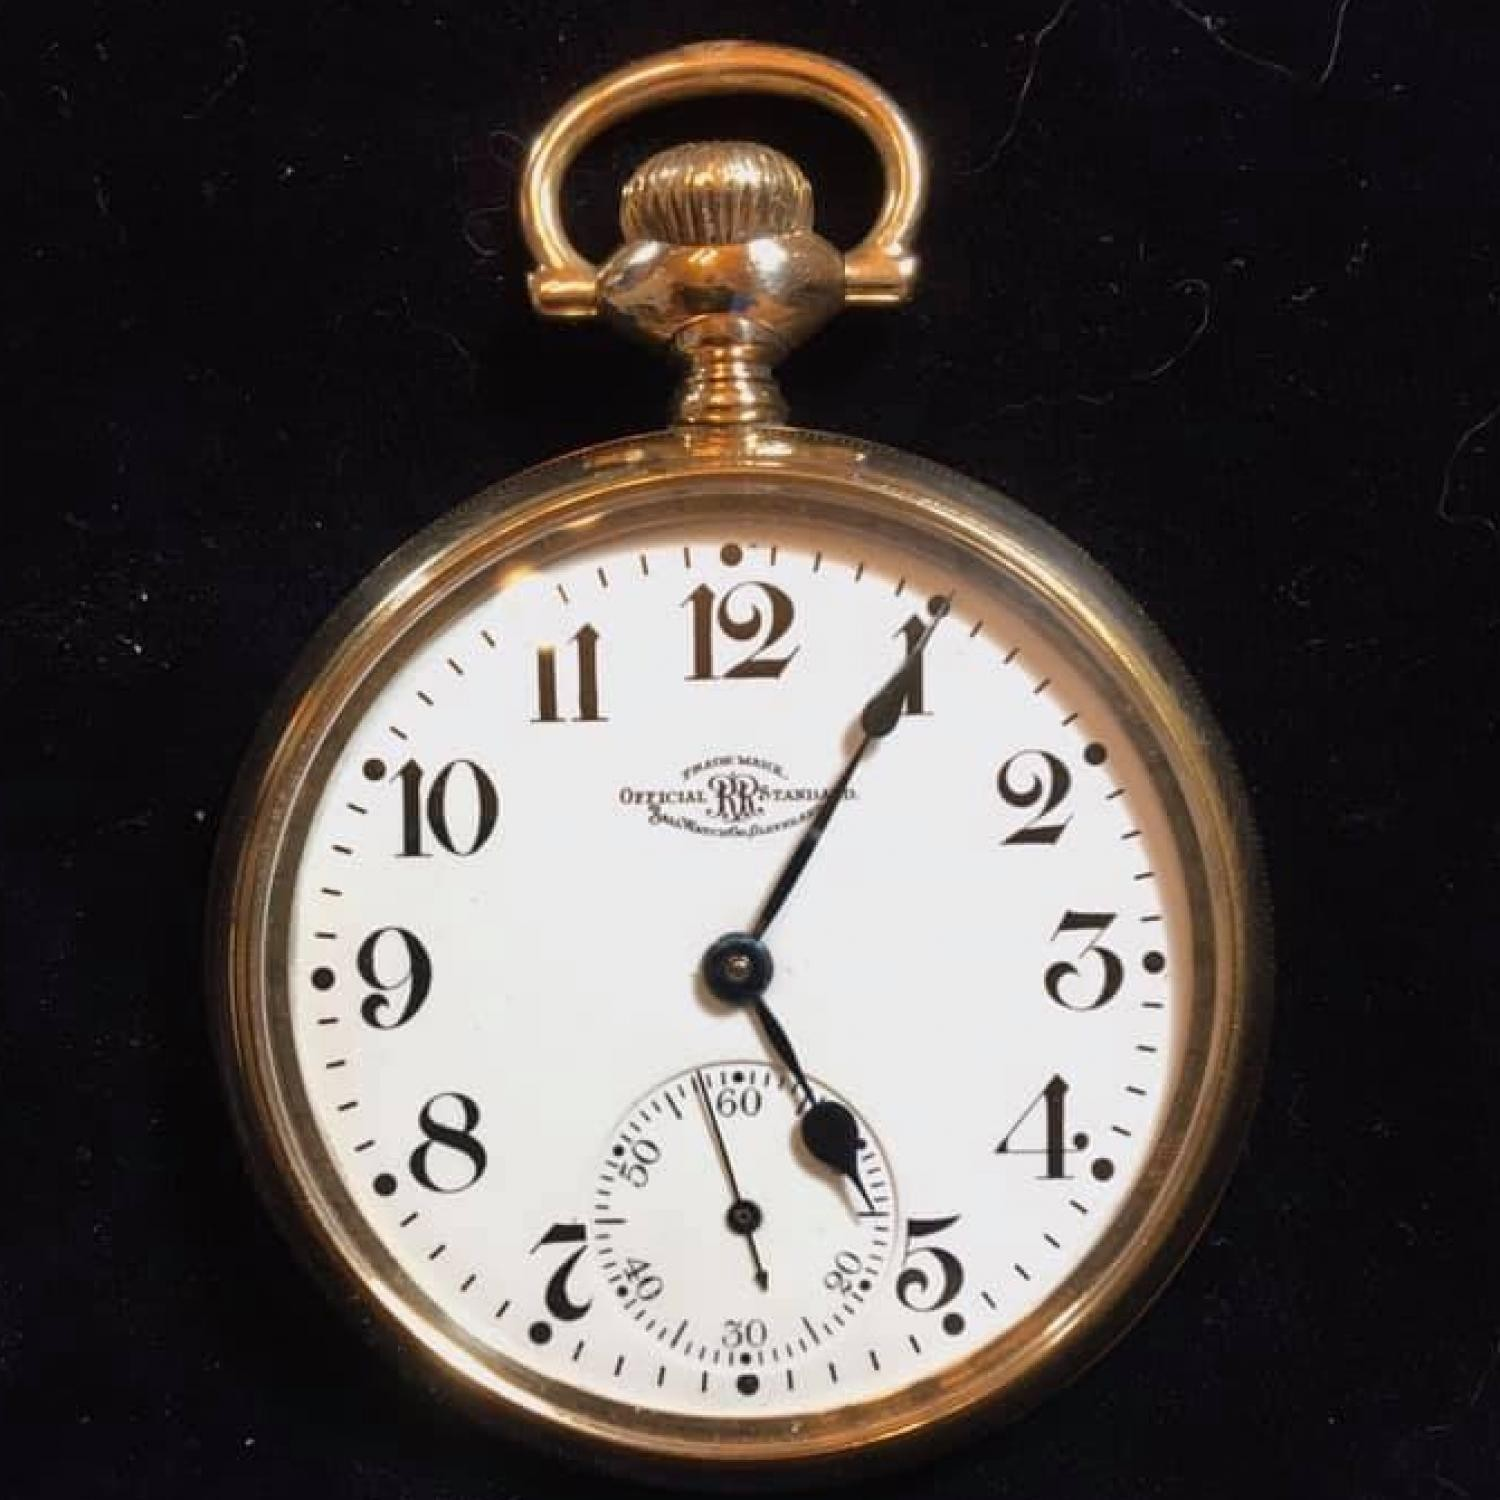 Image of Ball - Waltham Official Standard #B228325 Dial